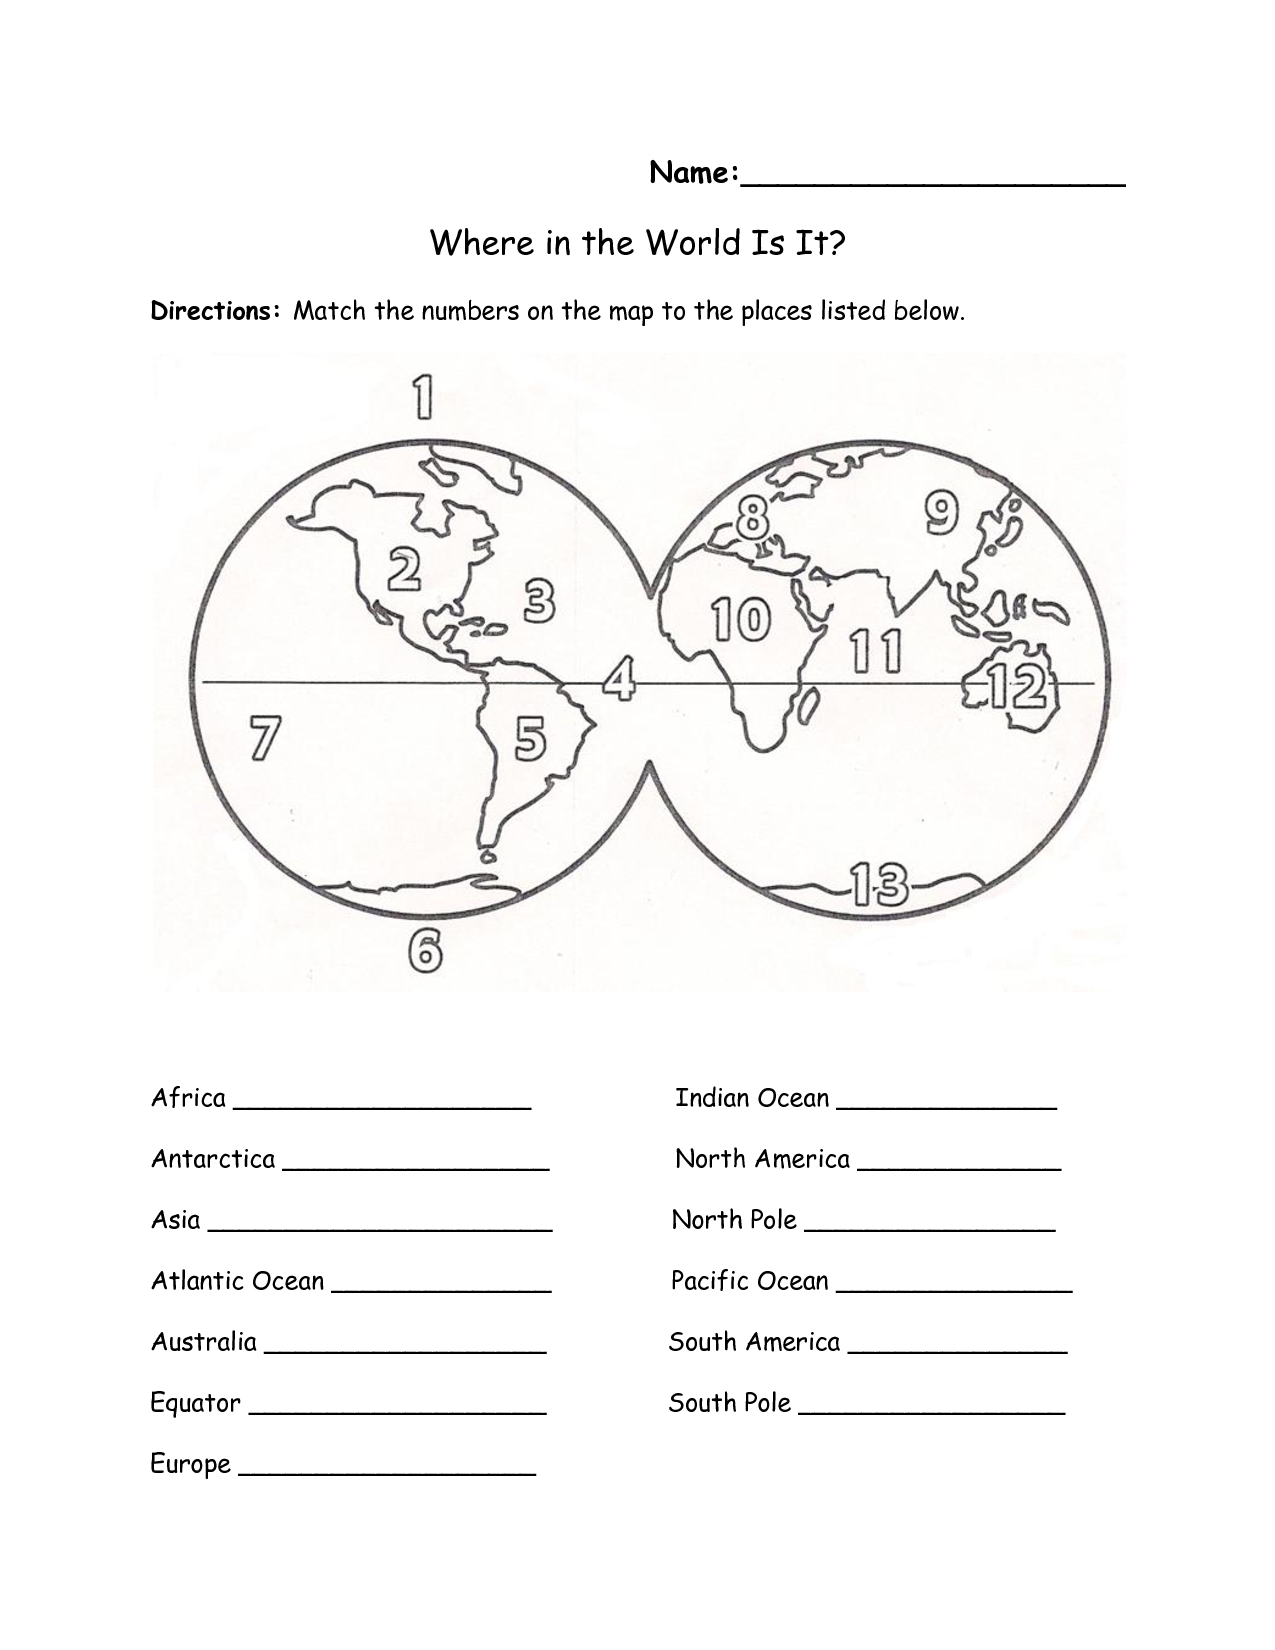 Printables continents and oceans of the world worksheet printables continents and oceans of the world worksheet gumiabroncs Images